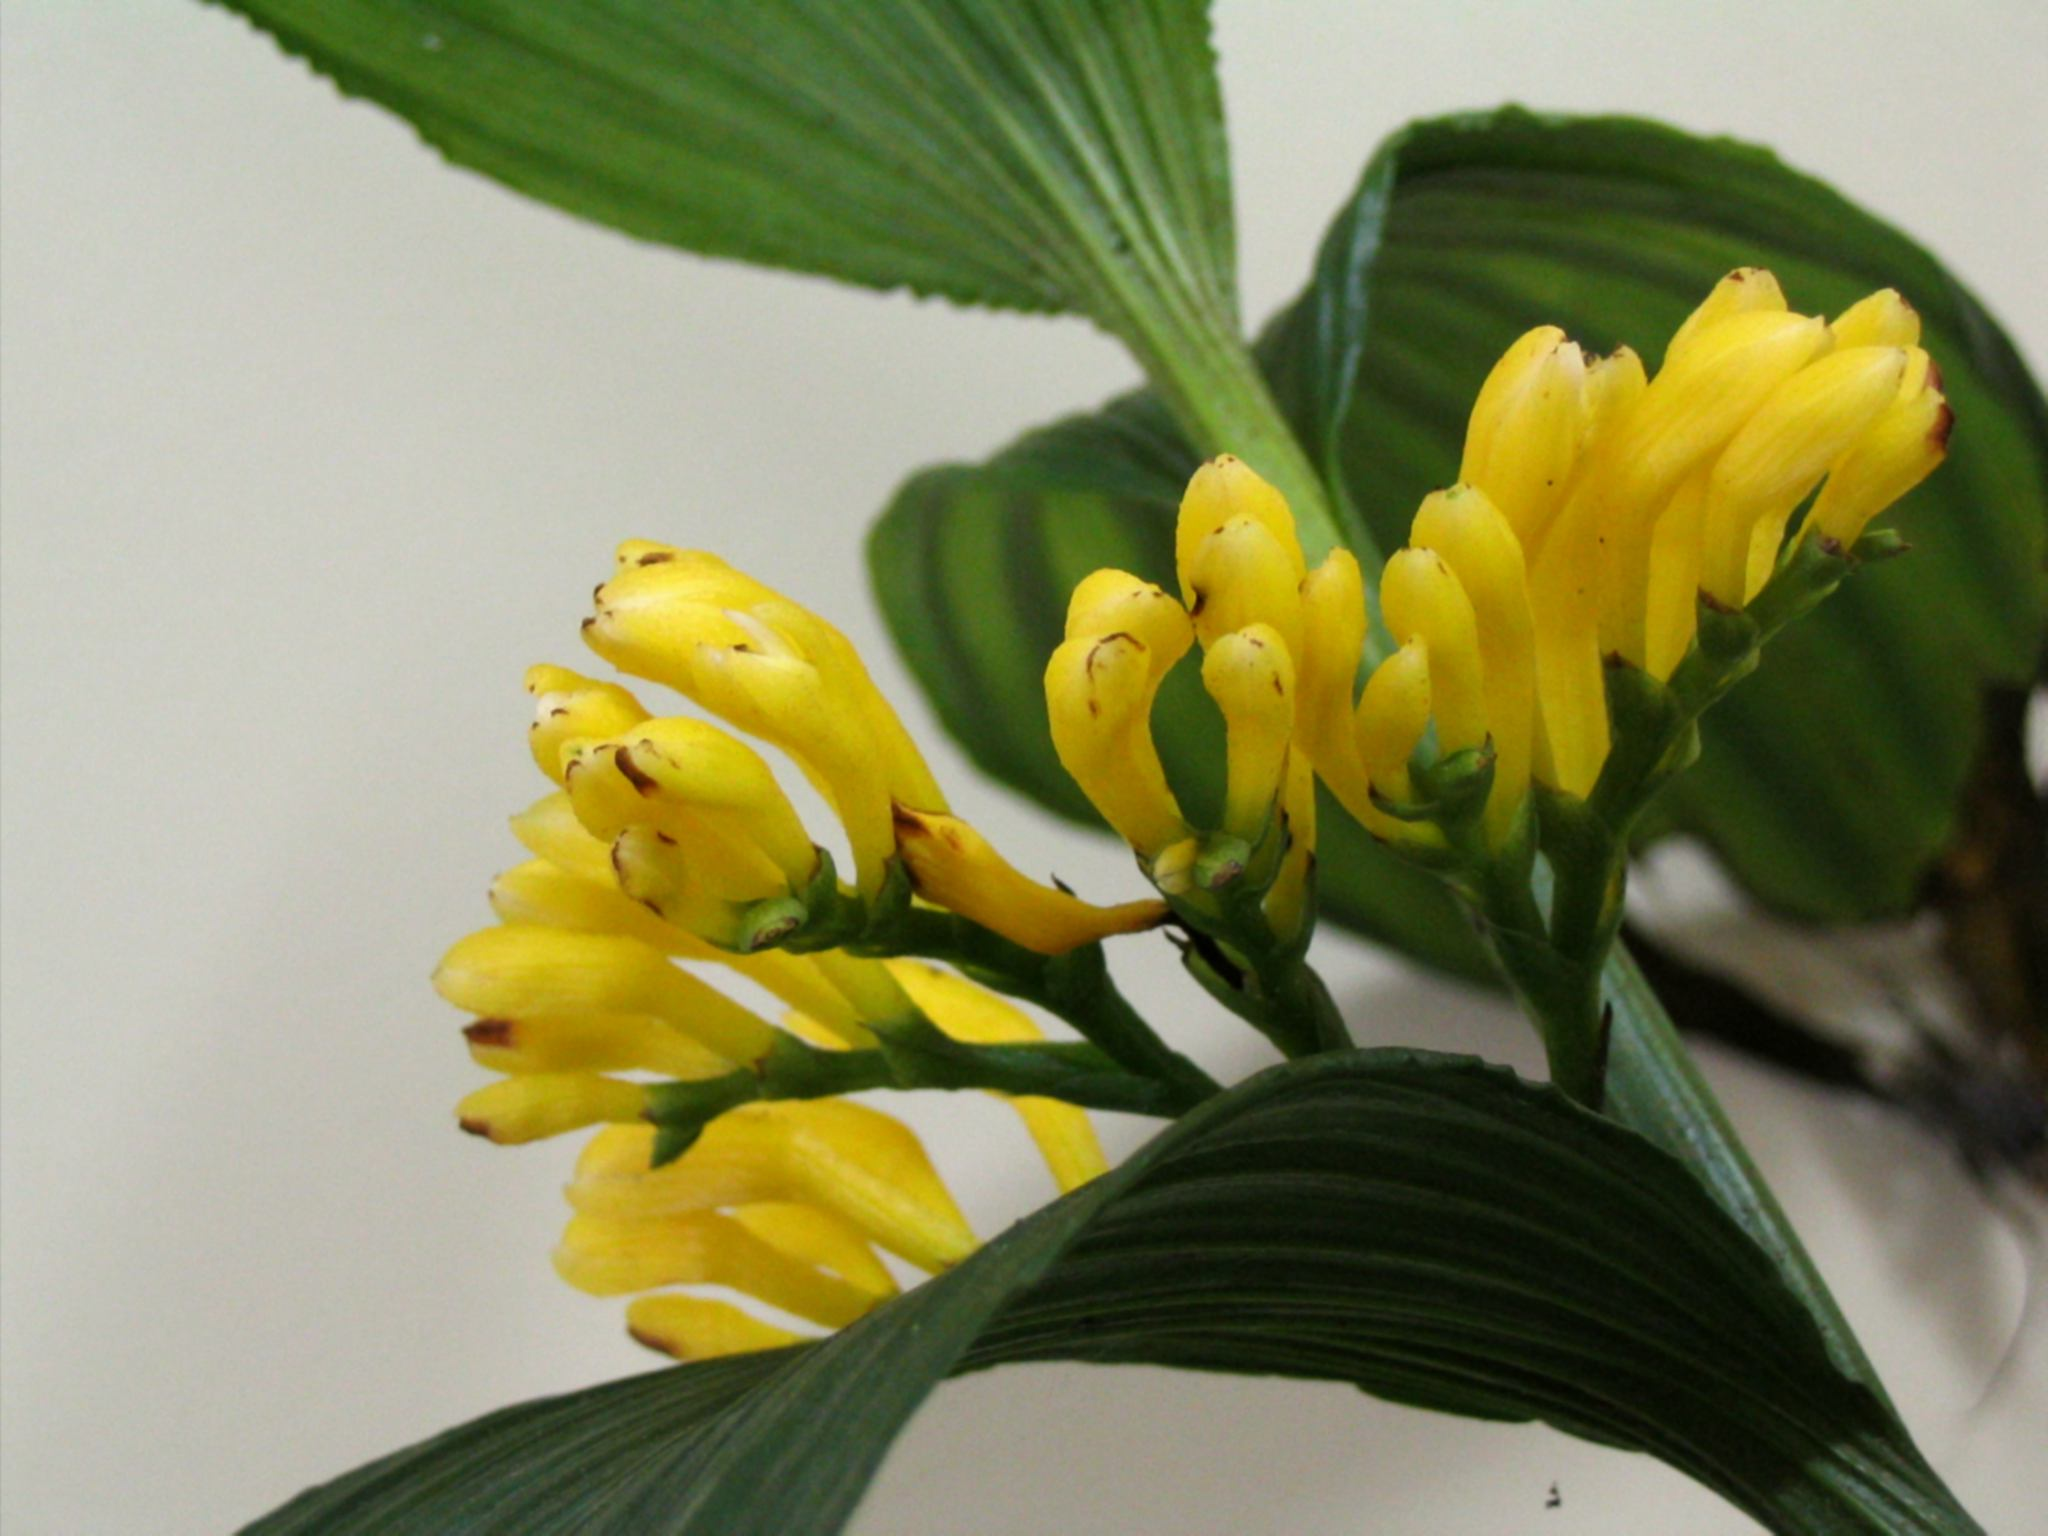 Corymborchis flava flowers, by Roberto Takase